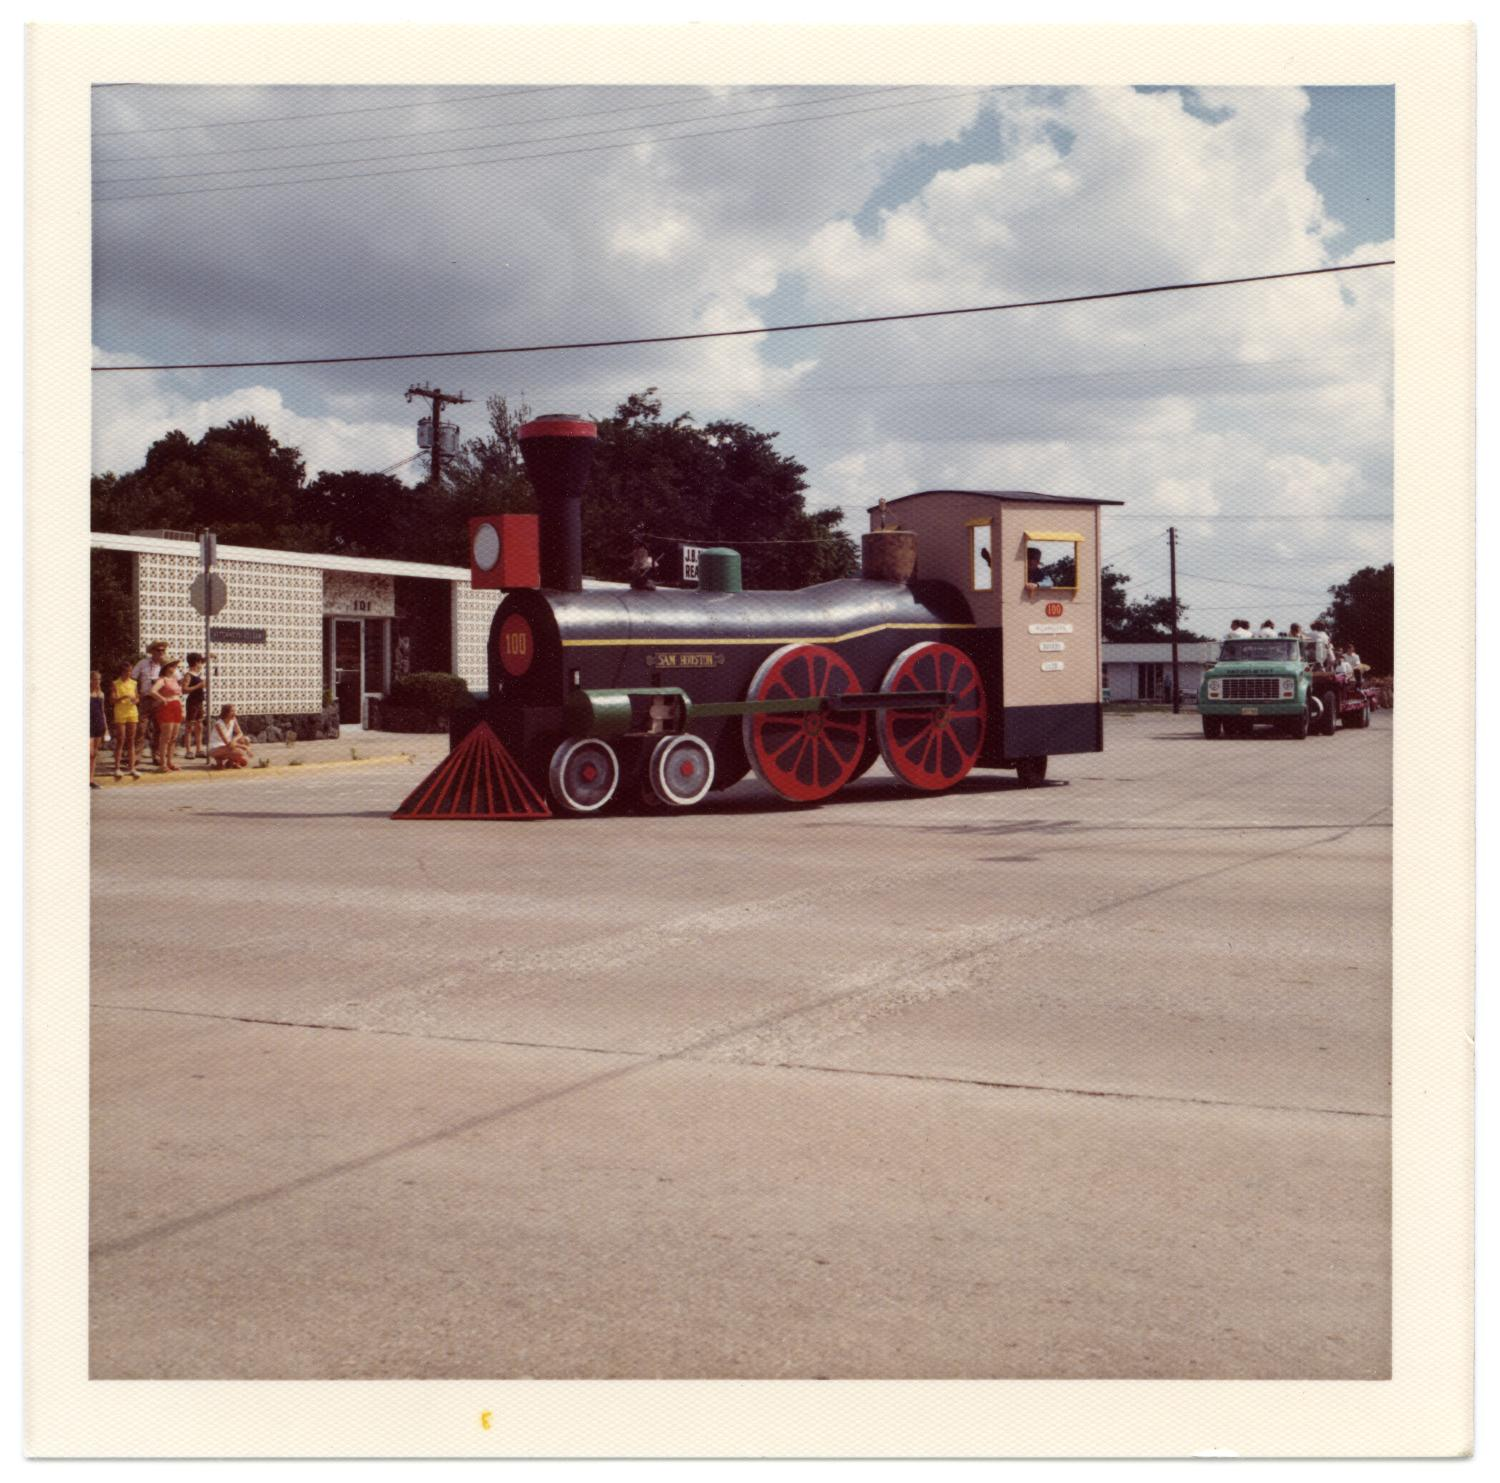 Richardson Centennial Parade, Photograph of a parade float at the Centennial celebration on the corner of Main Street and Greenville Avenue. The float is shaped like a train locomotive. In the background, there are people watching the parade on the left, and a green truck on the right.,